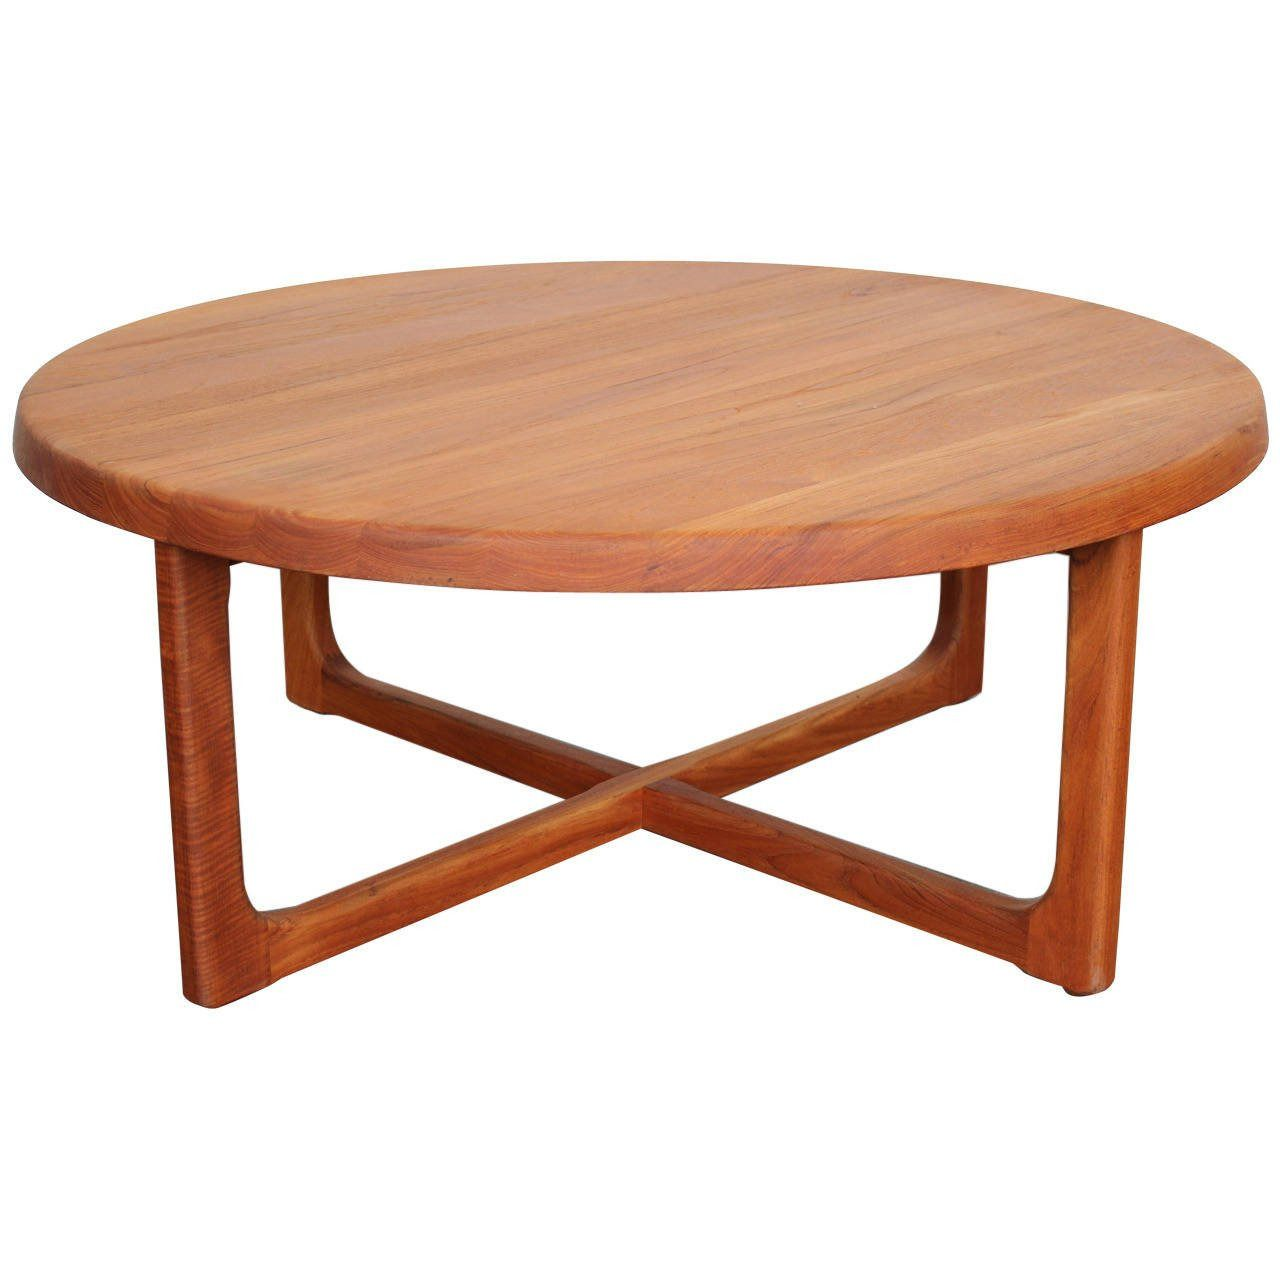 100 Round Mid Century Coffee Table Best Color Furniture For You Check More At Http Livel Teak Coffee Table Round Coffee Table Decor Coffee Table Furniture [ 1280 x 1280 Pixel ]